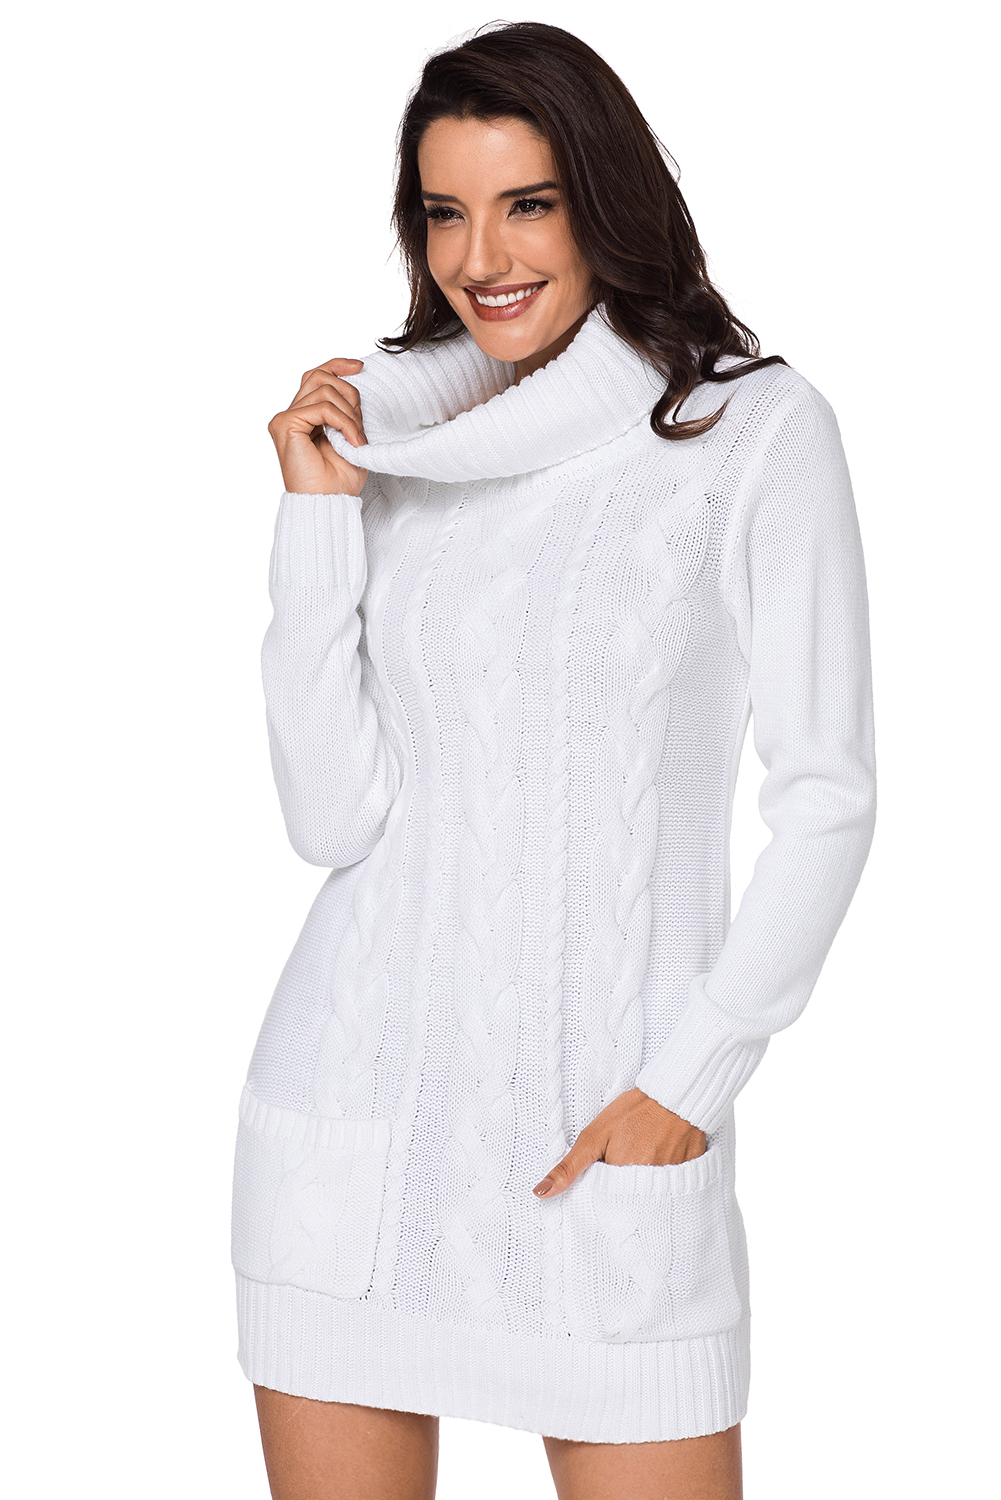 Us3863 Zkess White Cowl Neck Cable Knit Sweater Dress